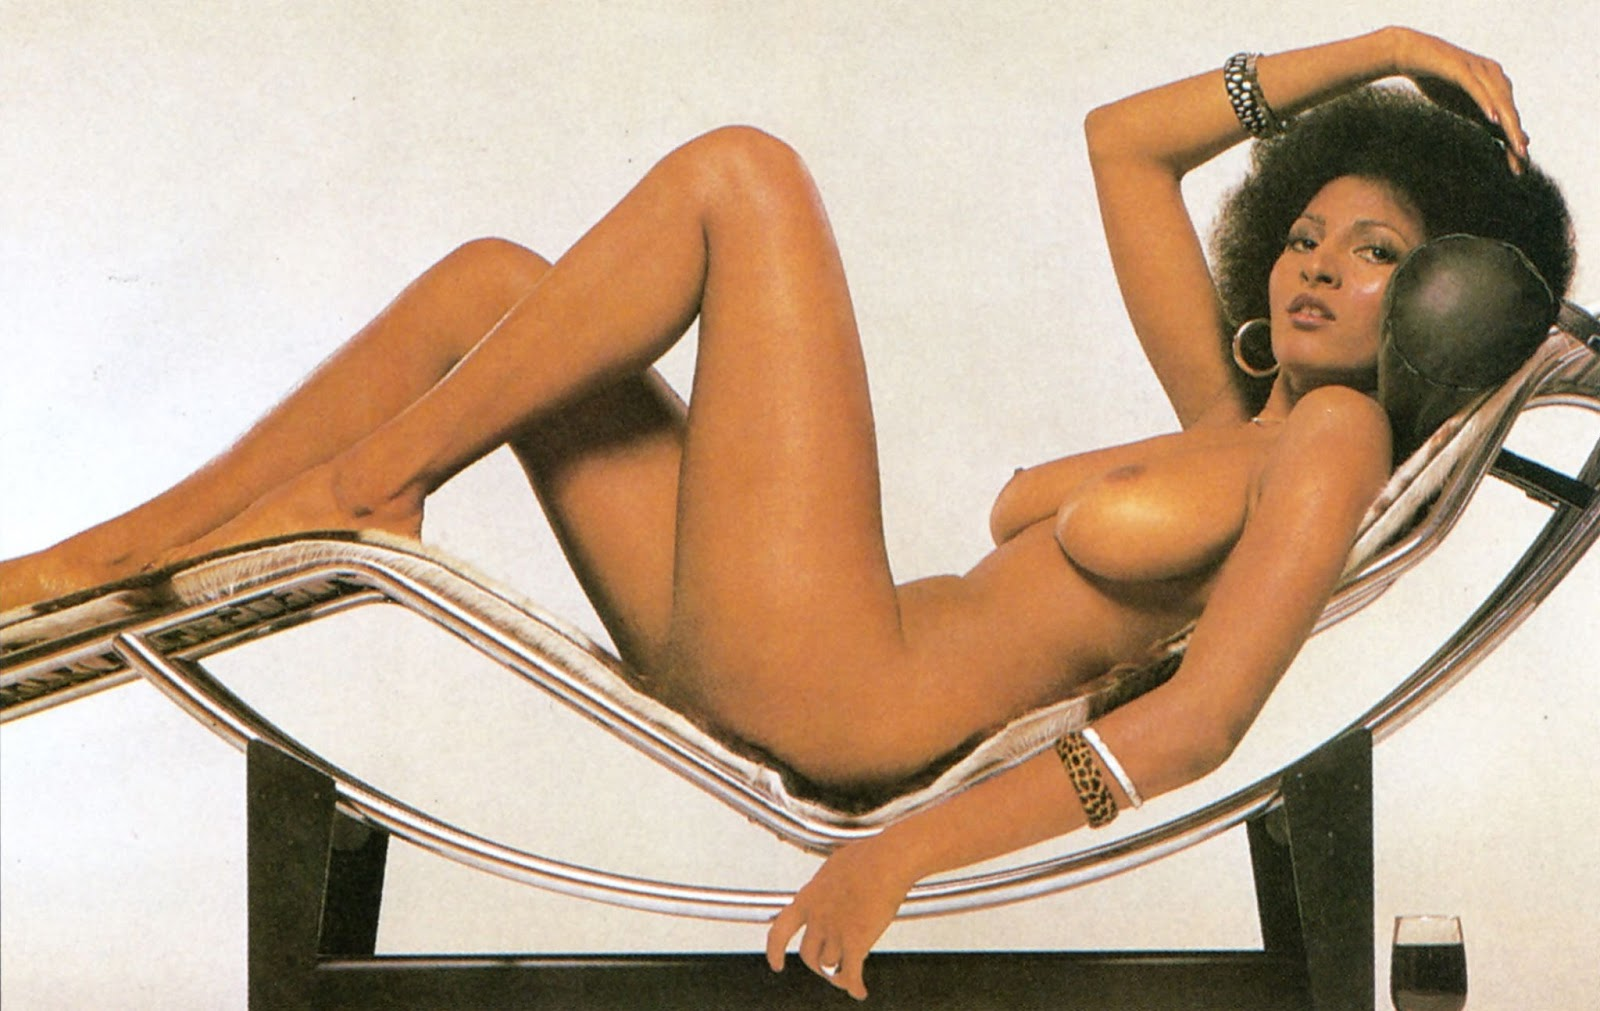 Free foxy brown the rapper naked pics confirm